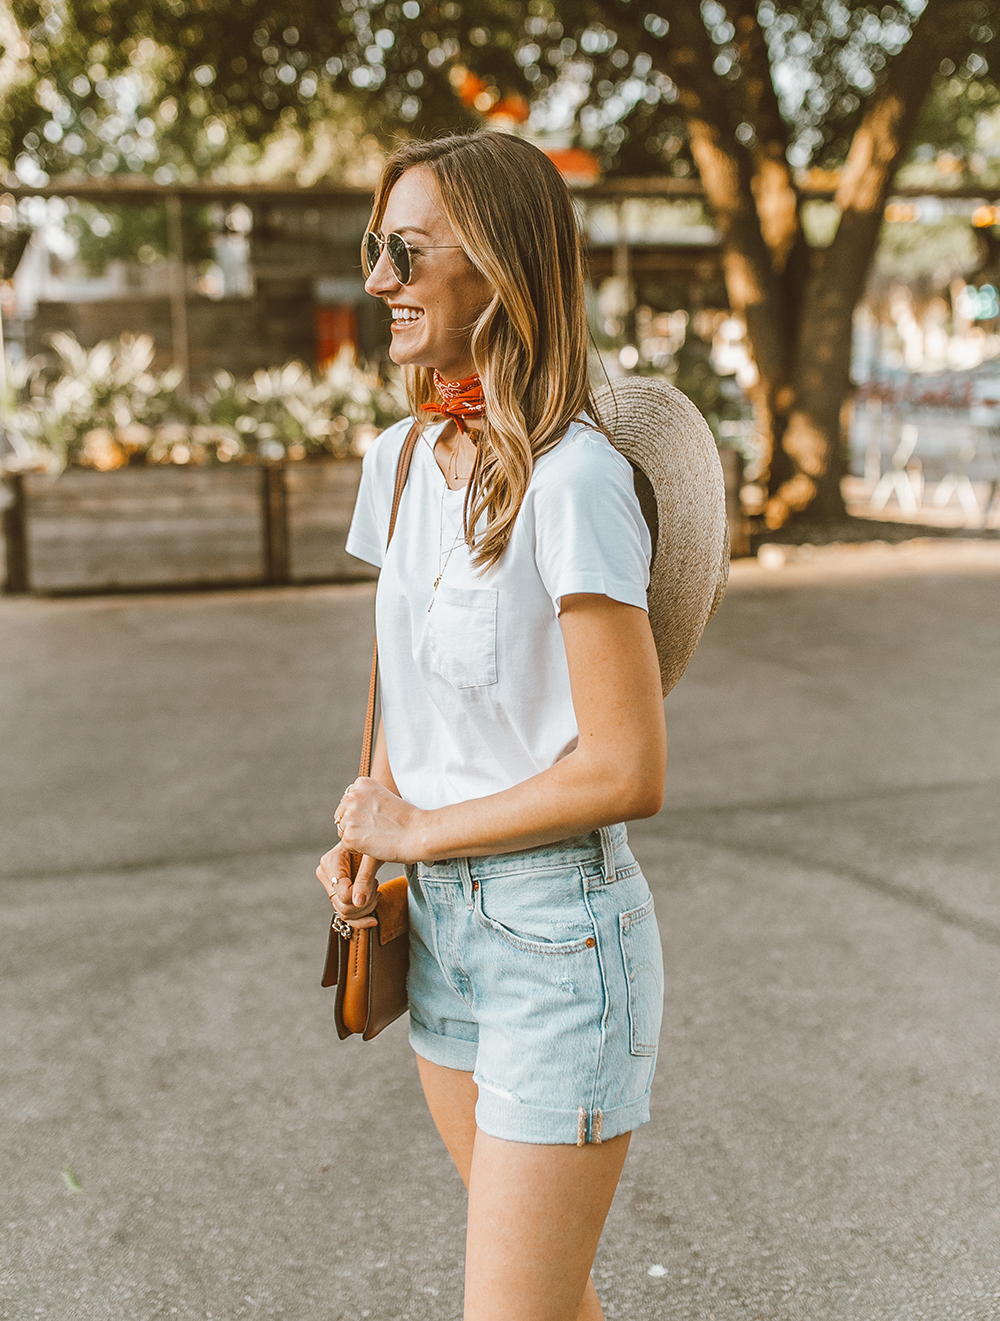 livvyland blog olivia watson austin texas fashion style blogger what to wear levis denim shorts festival outfit idea 2 - Summer time In Levi's